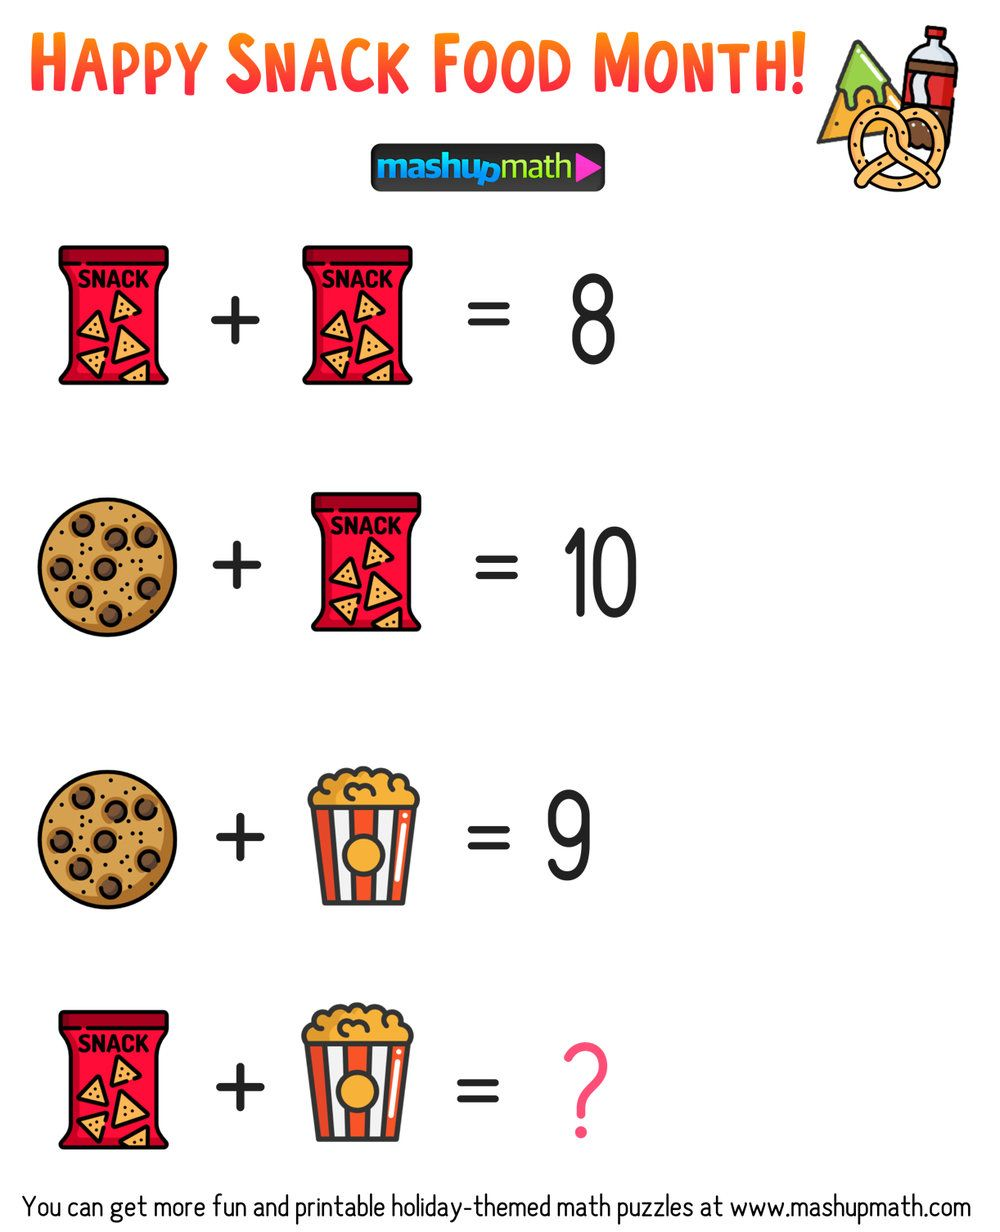 Free Math Brain Teaser Puzzles For Kids In Grades 1 6 To Celebrate Snack Food Month Mashup Math Maths Puzzles Math Puzzles Brain Teasers Brain Teasers For Kids [ 1232 x 1000 Pixel ]